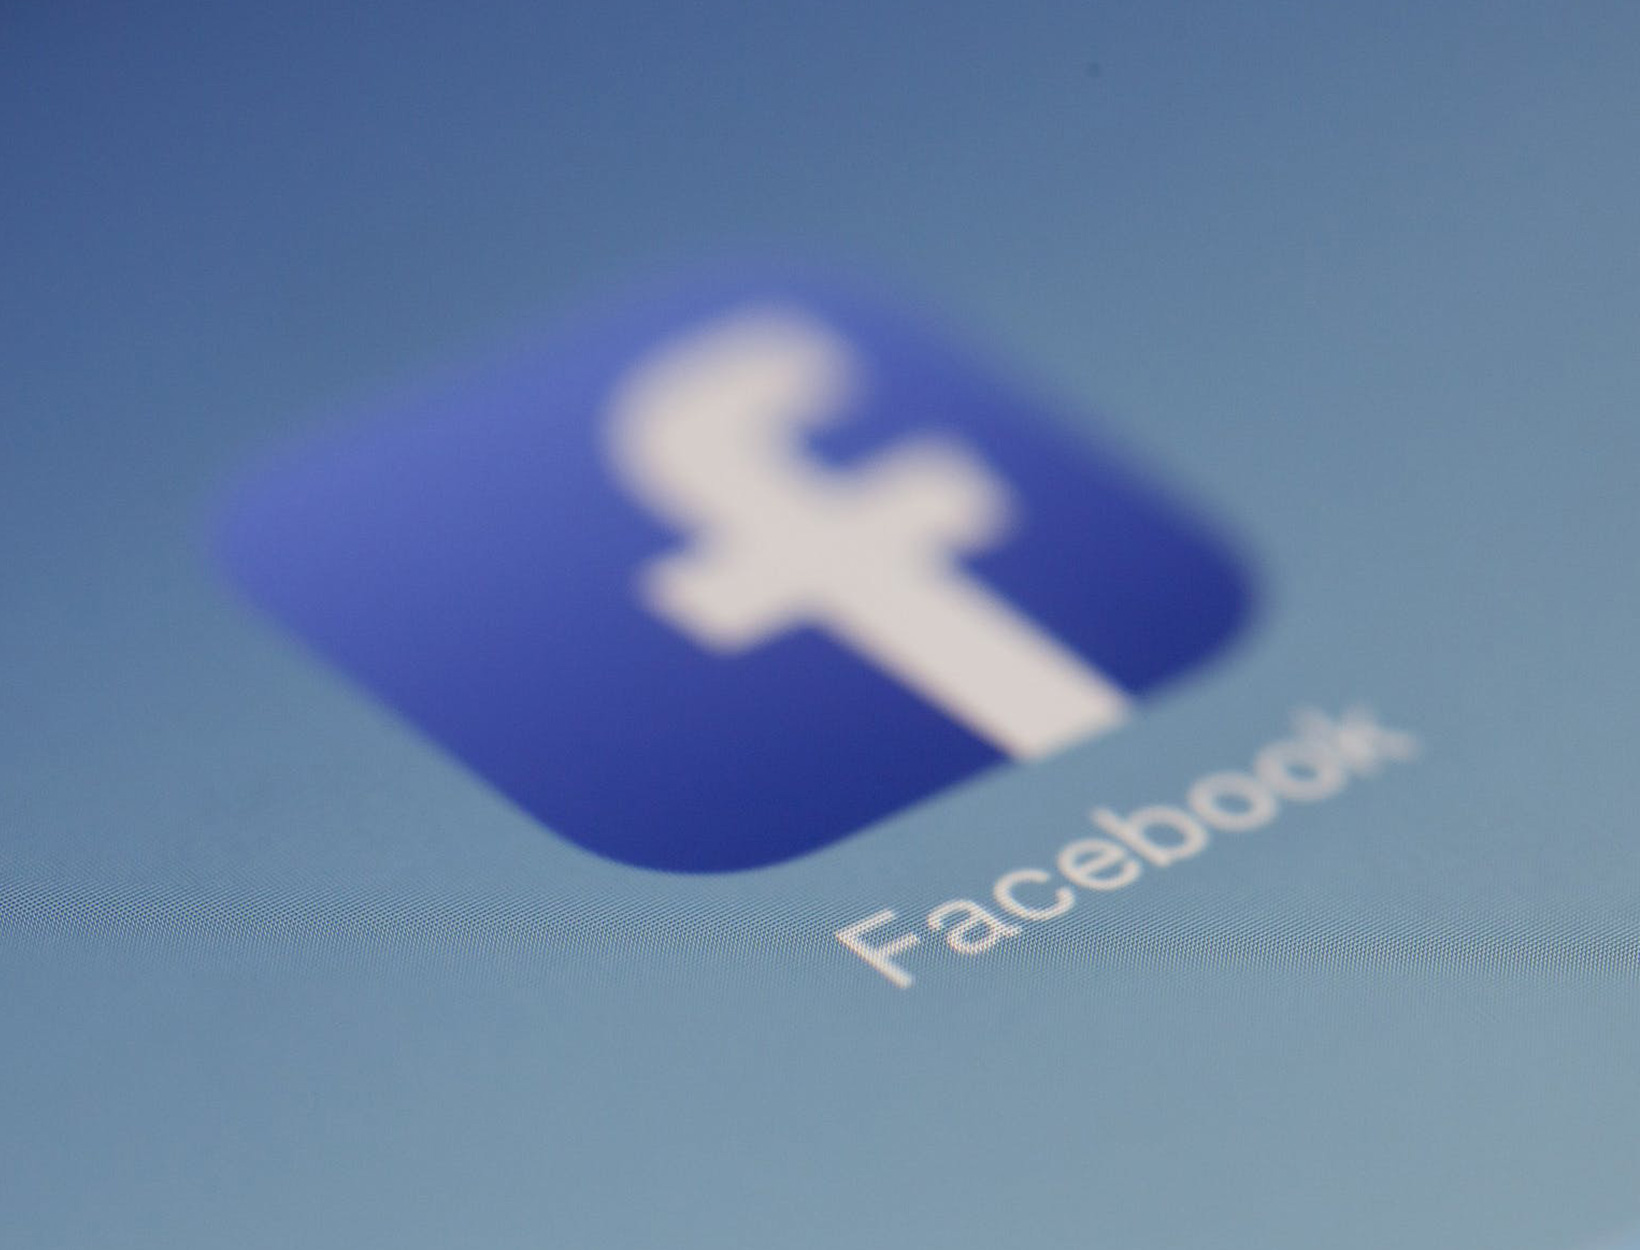 Facebook Conceded It Might Make You Feel Bad. Here's How to Interpret That.